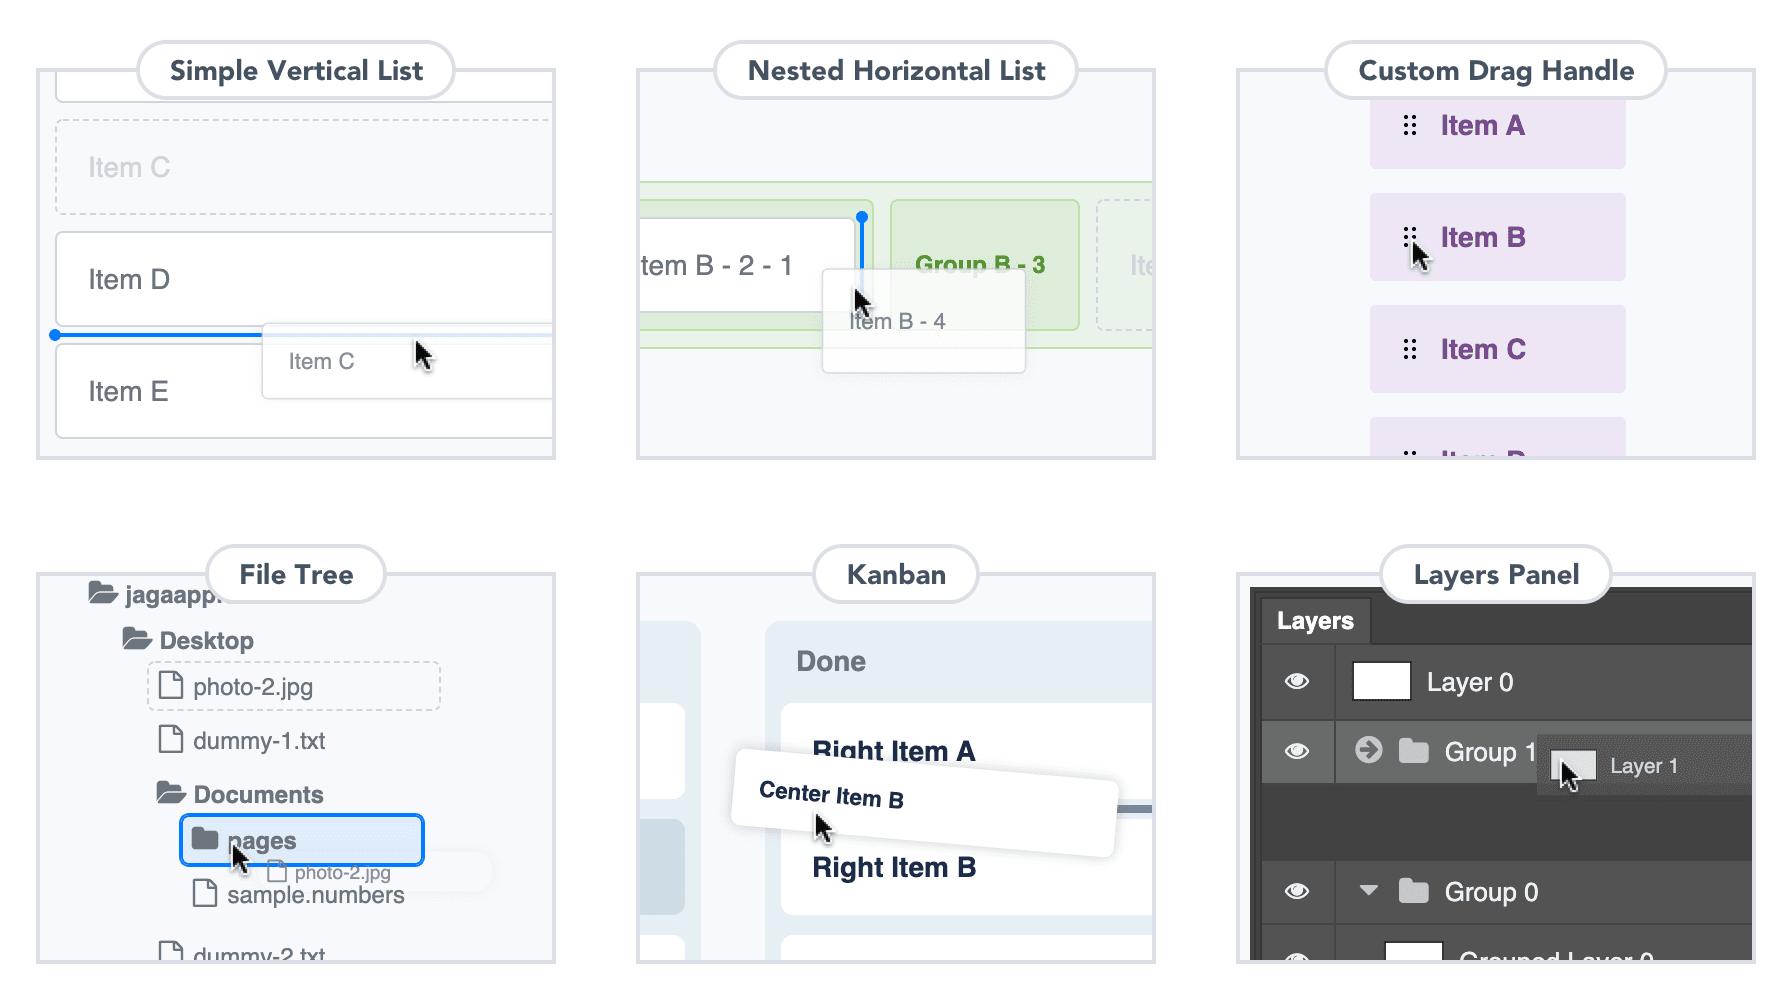 Simple Vertical List, Nested Horizontal List, File Tree, Kanban, and Layers Panel